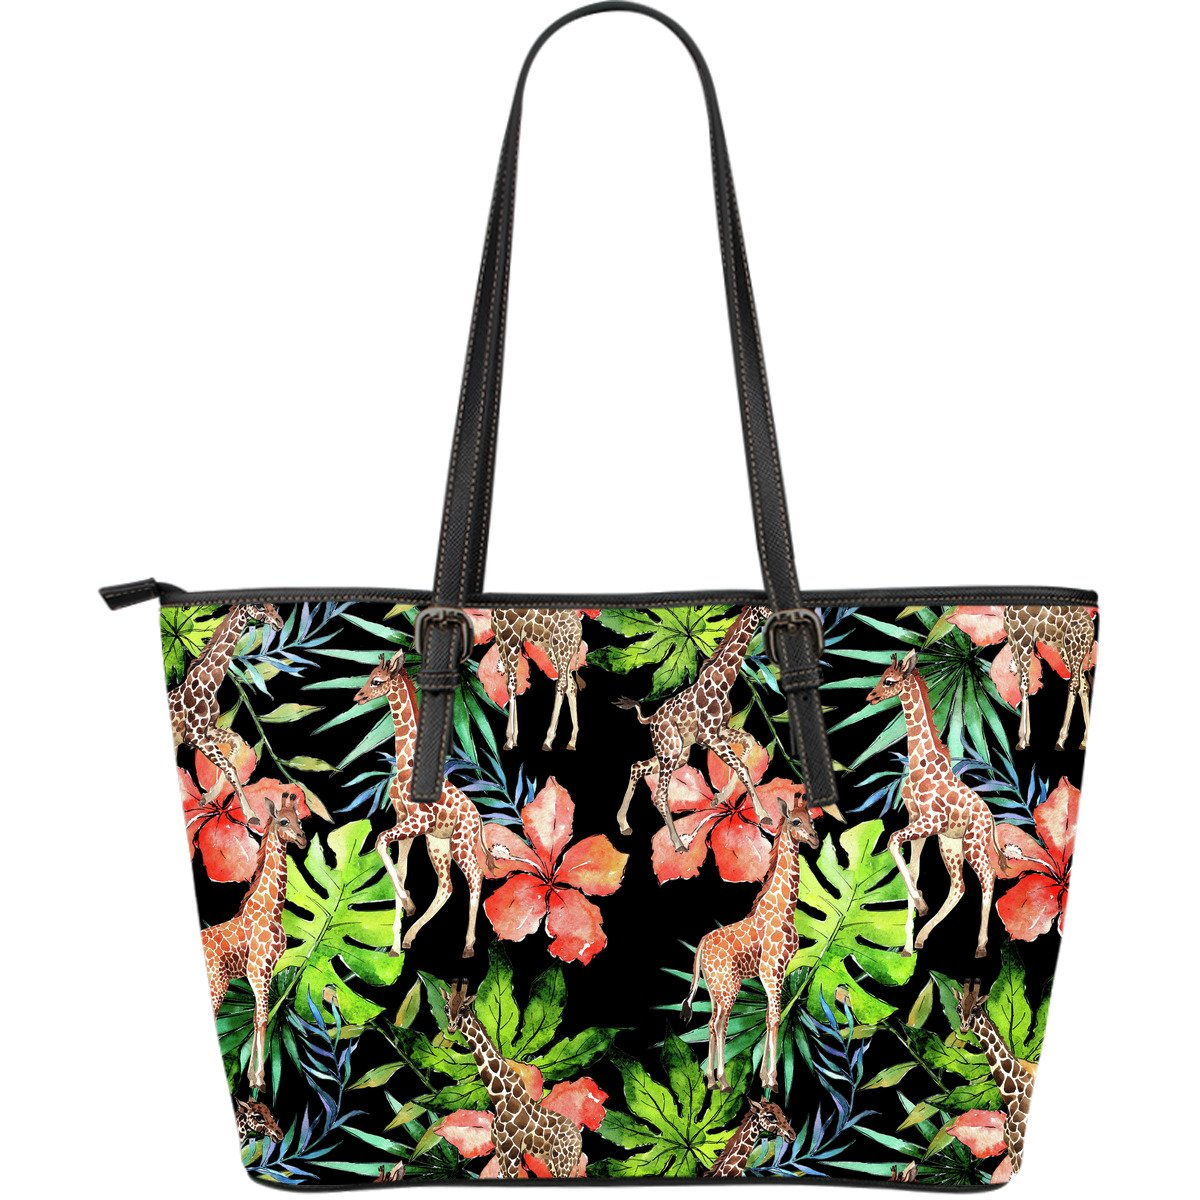 Black Tropical Giraffe Pattern Print Leather Tote Bag GearFrost